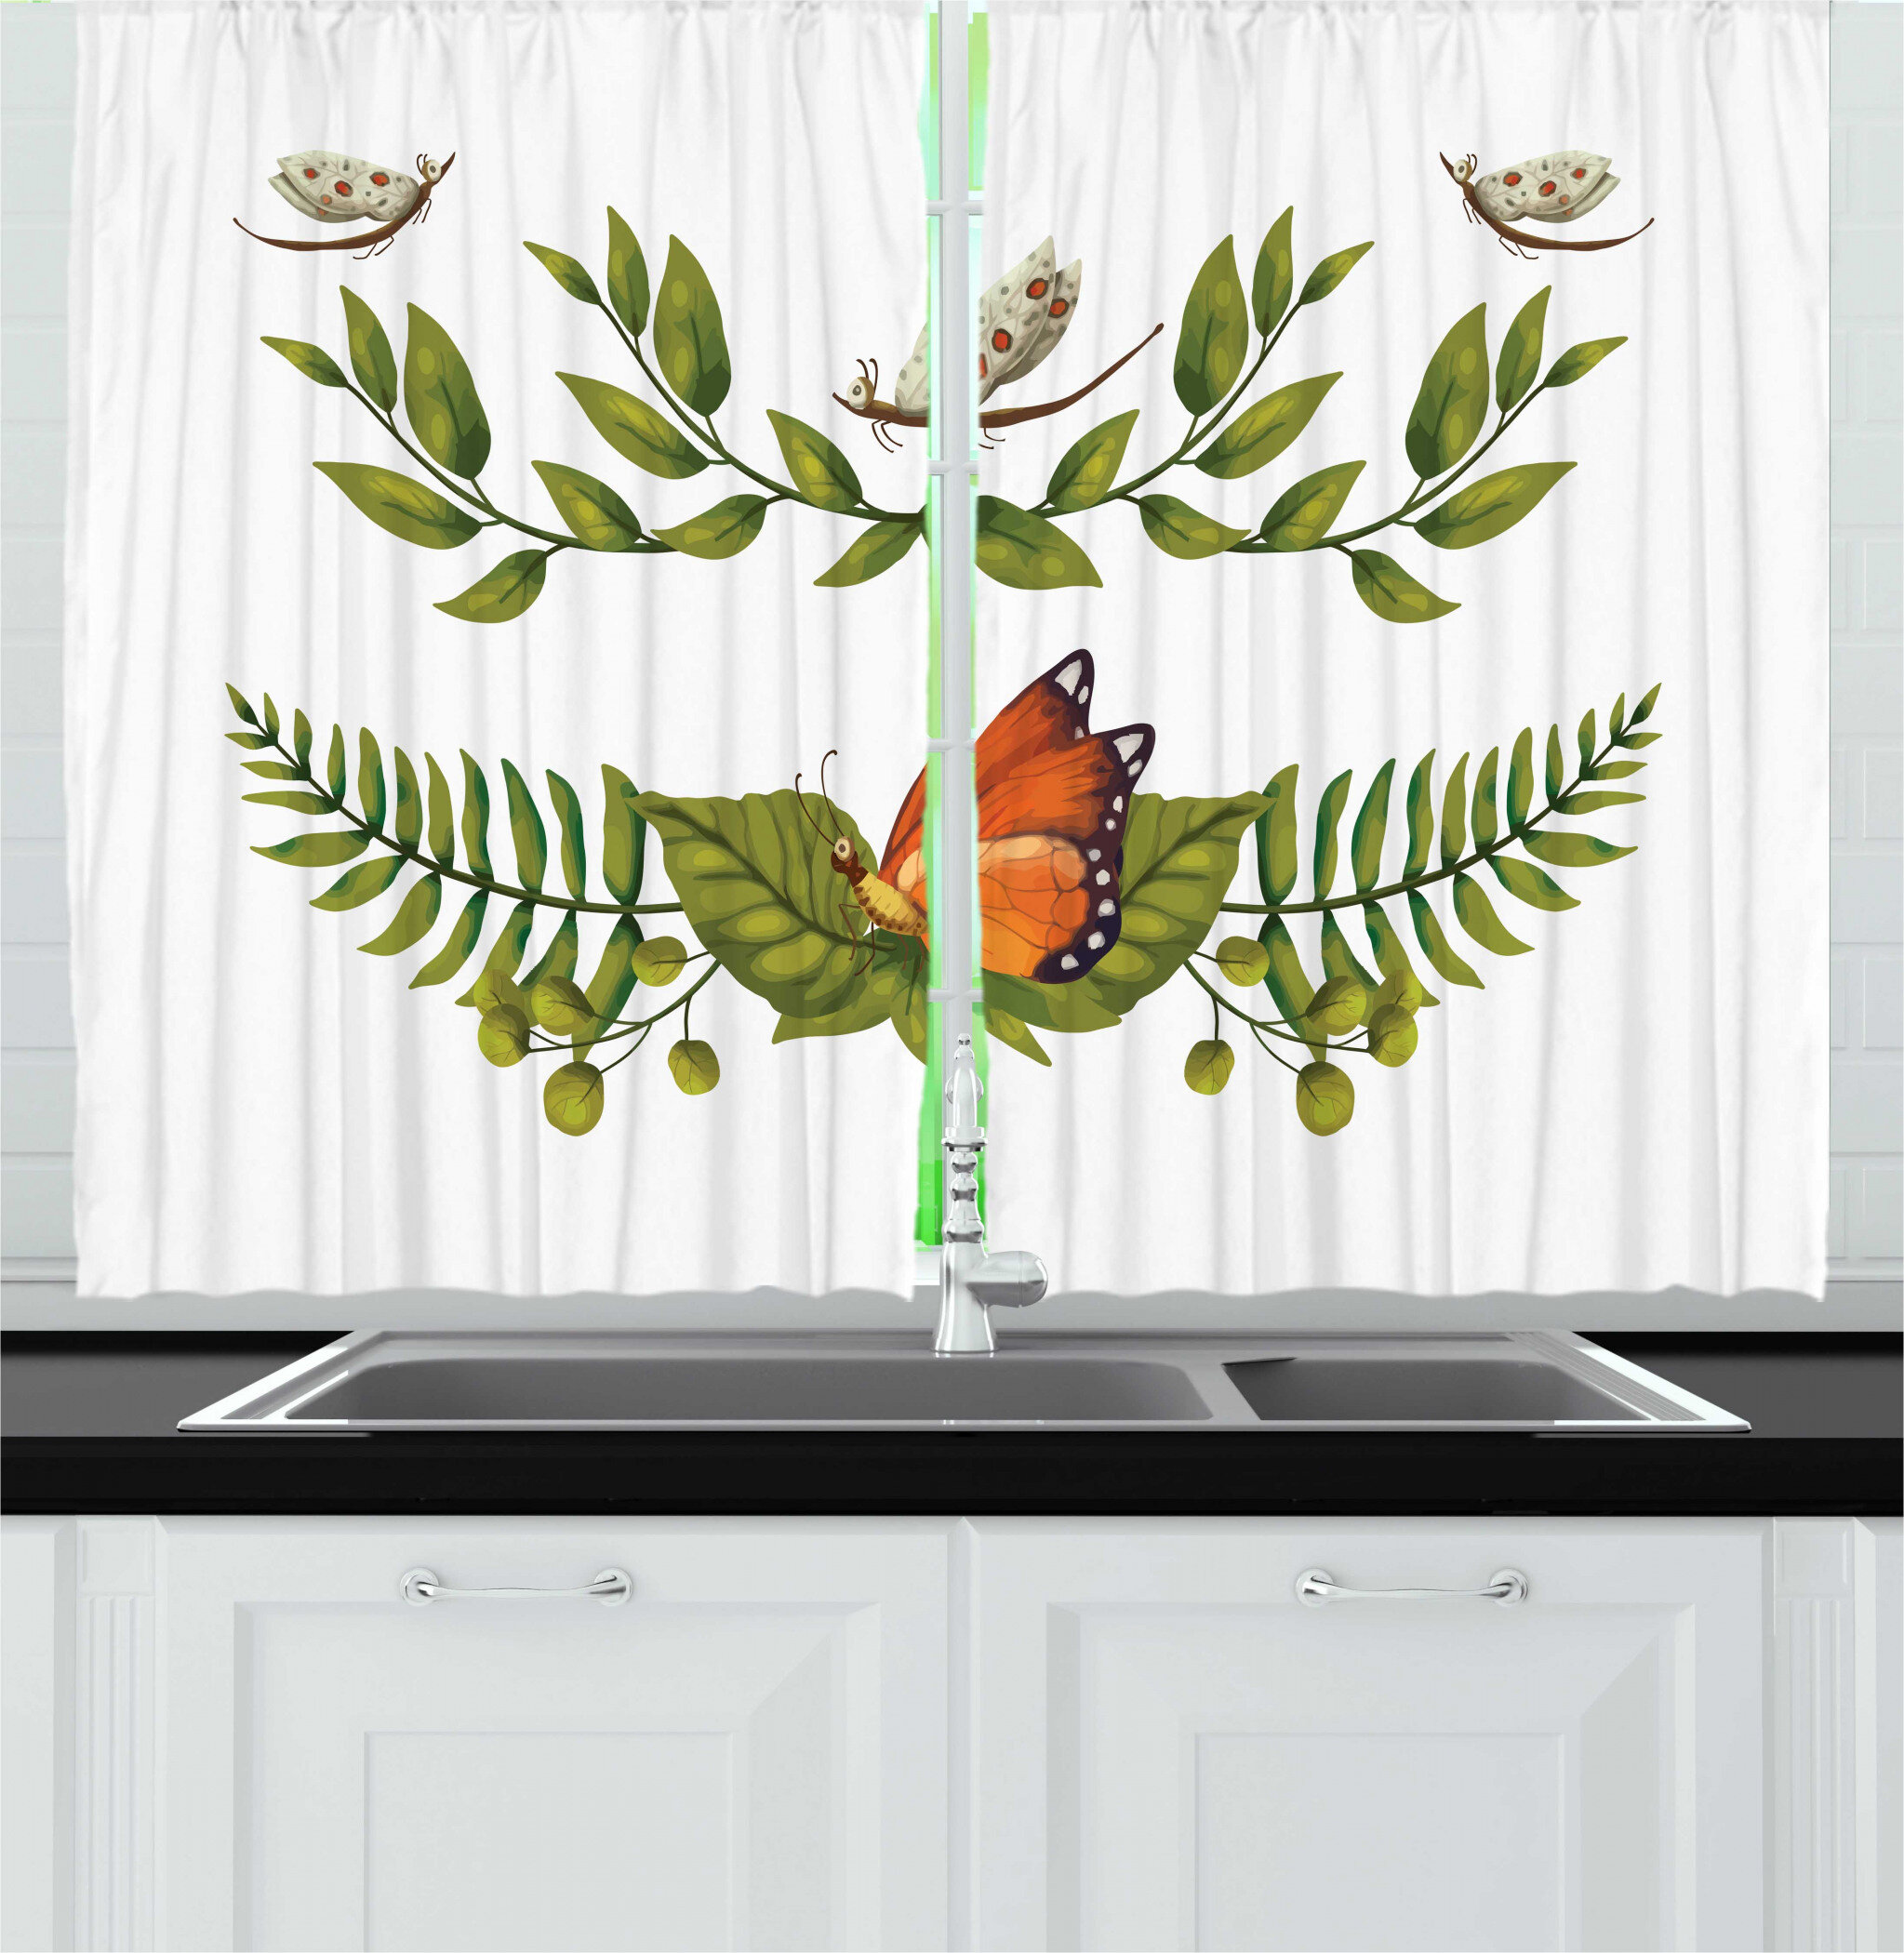 East Urban Home 2 Piece Insects Nature Outdoor Scene Illustration Of Leafy Branches And Butterflies Garden Art Kitchen Curtain Set Wayfair